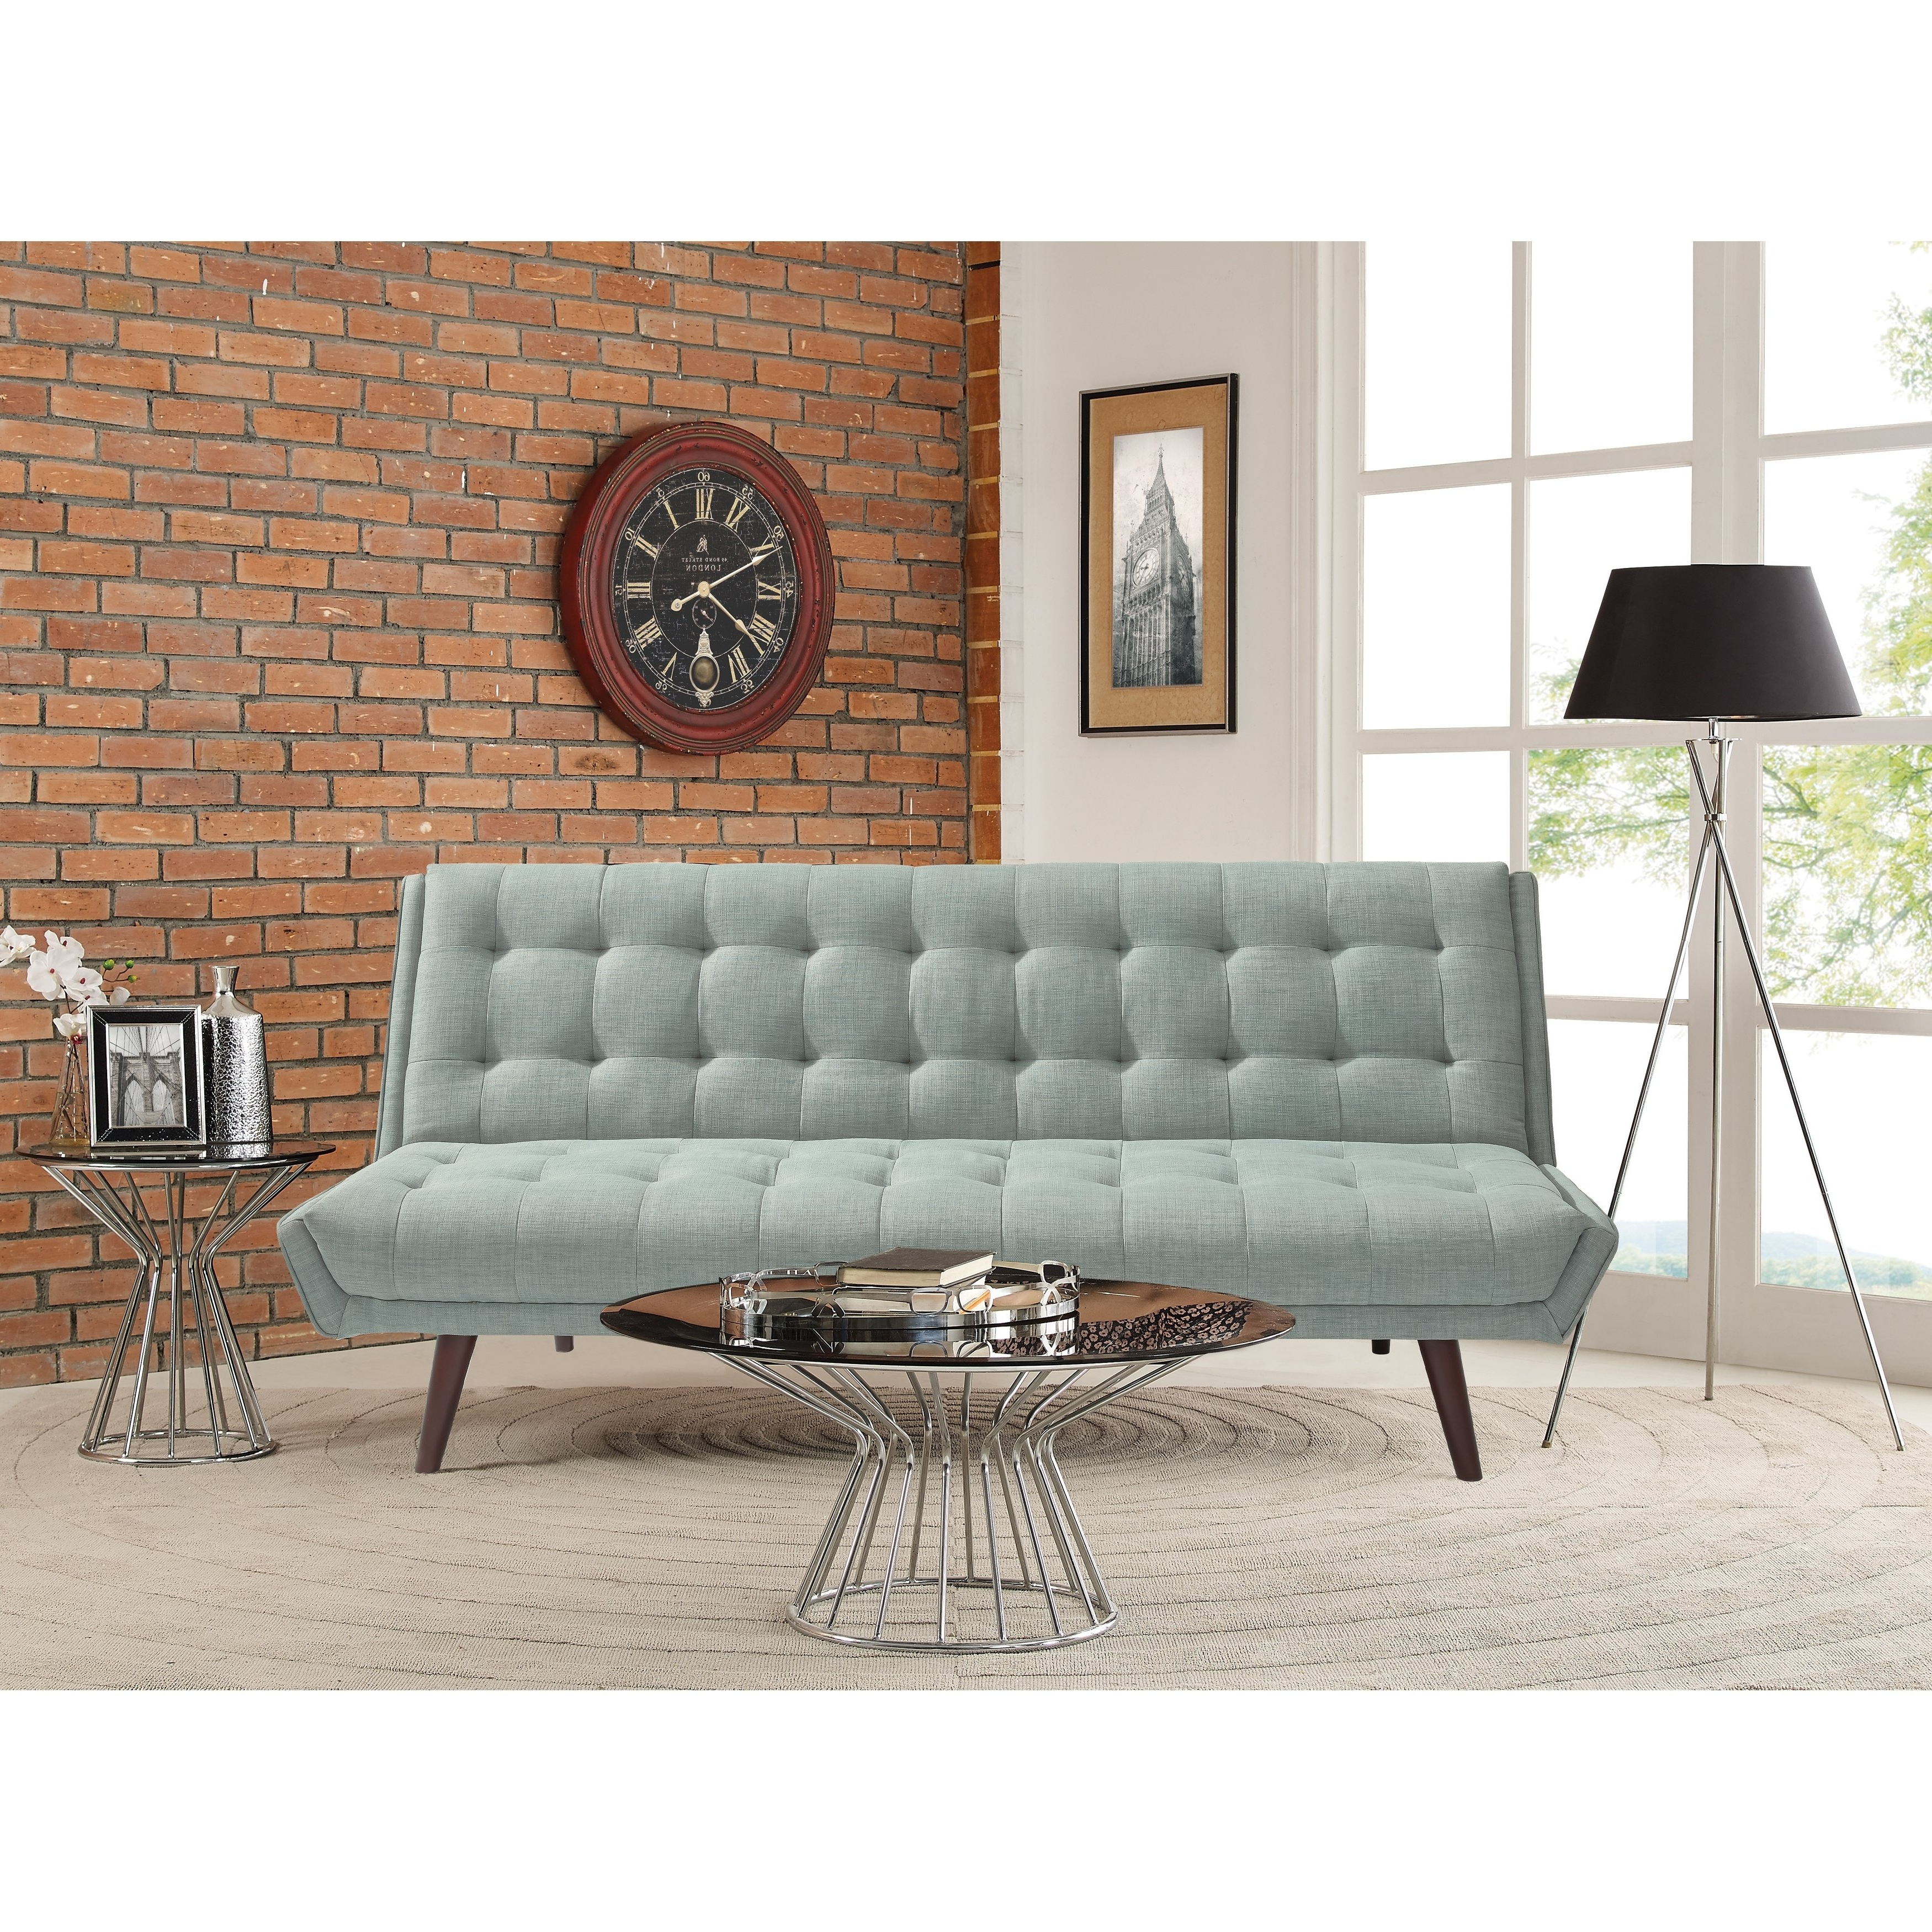 Landry Sofa Chairs Inside Widely Used Shop Relax A Lounger Landry Convertible Sofa – Free Shipping Today (Gallery 18 of 20)